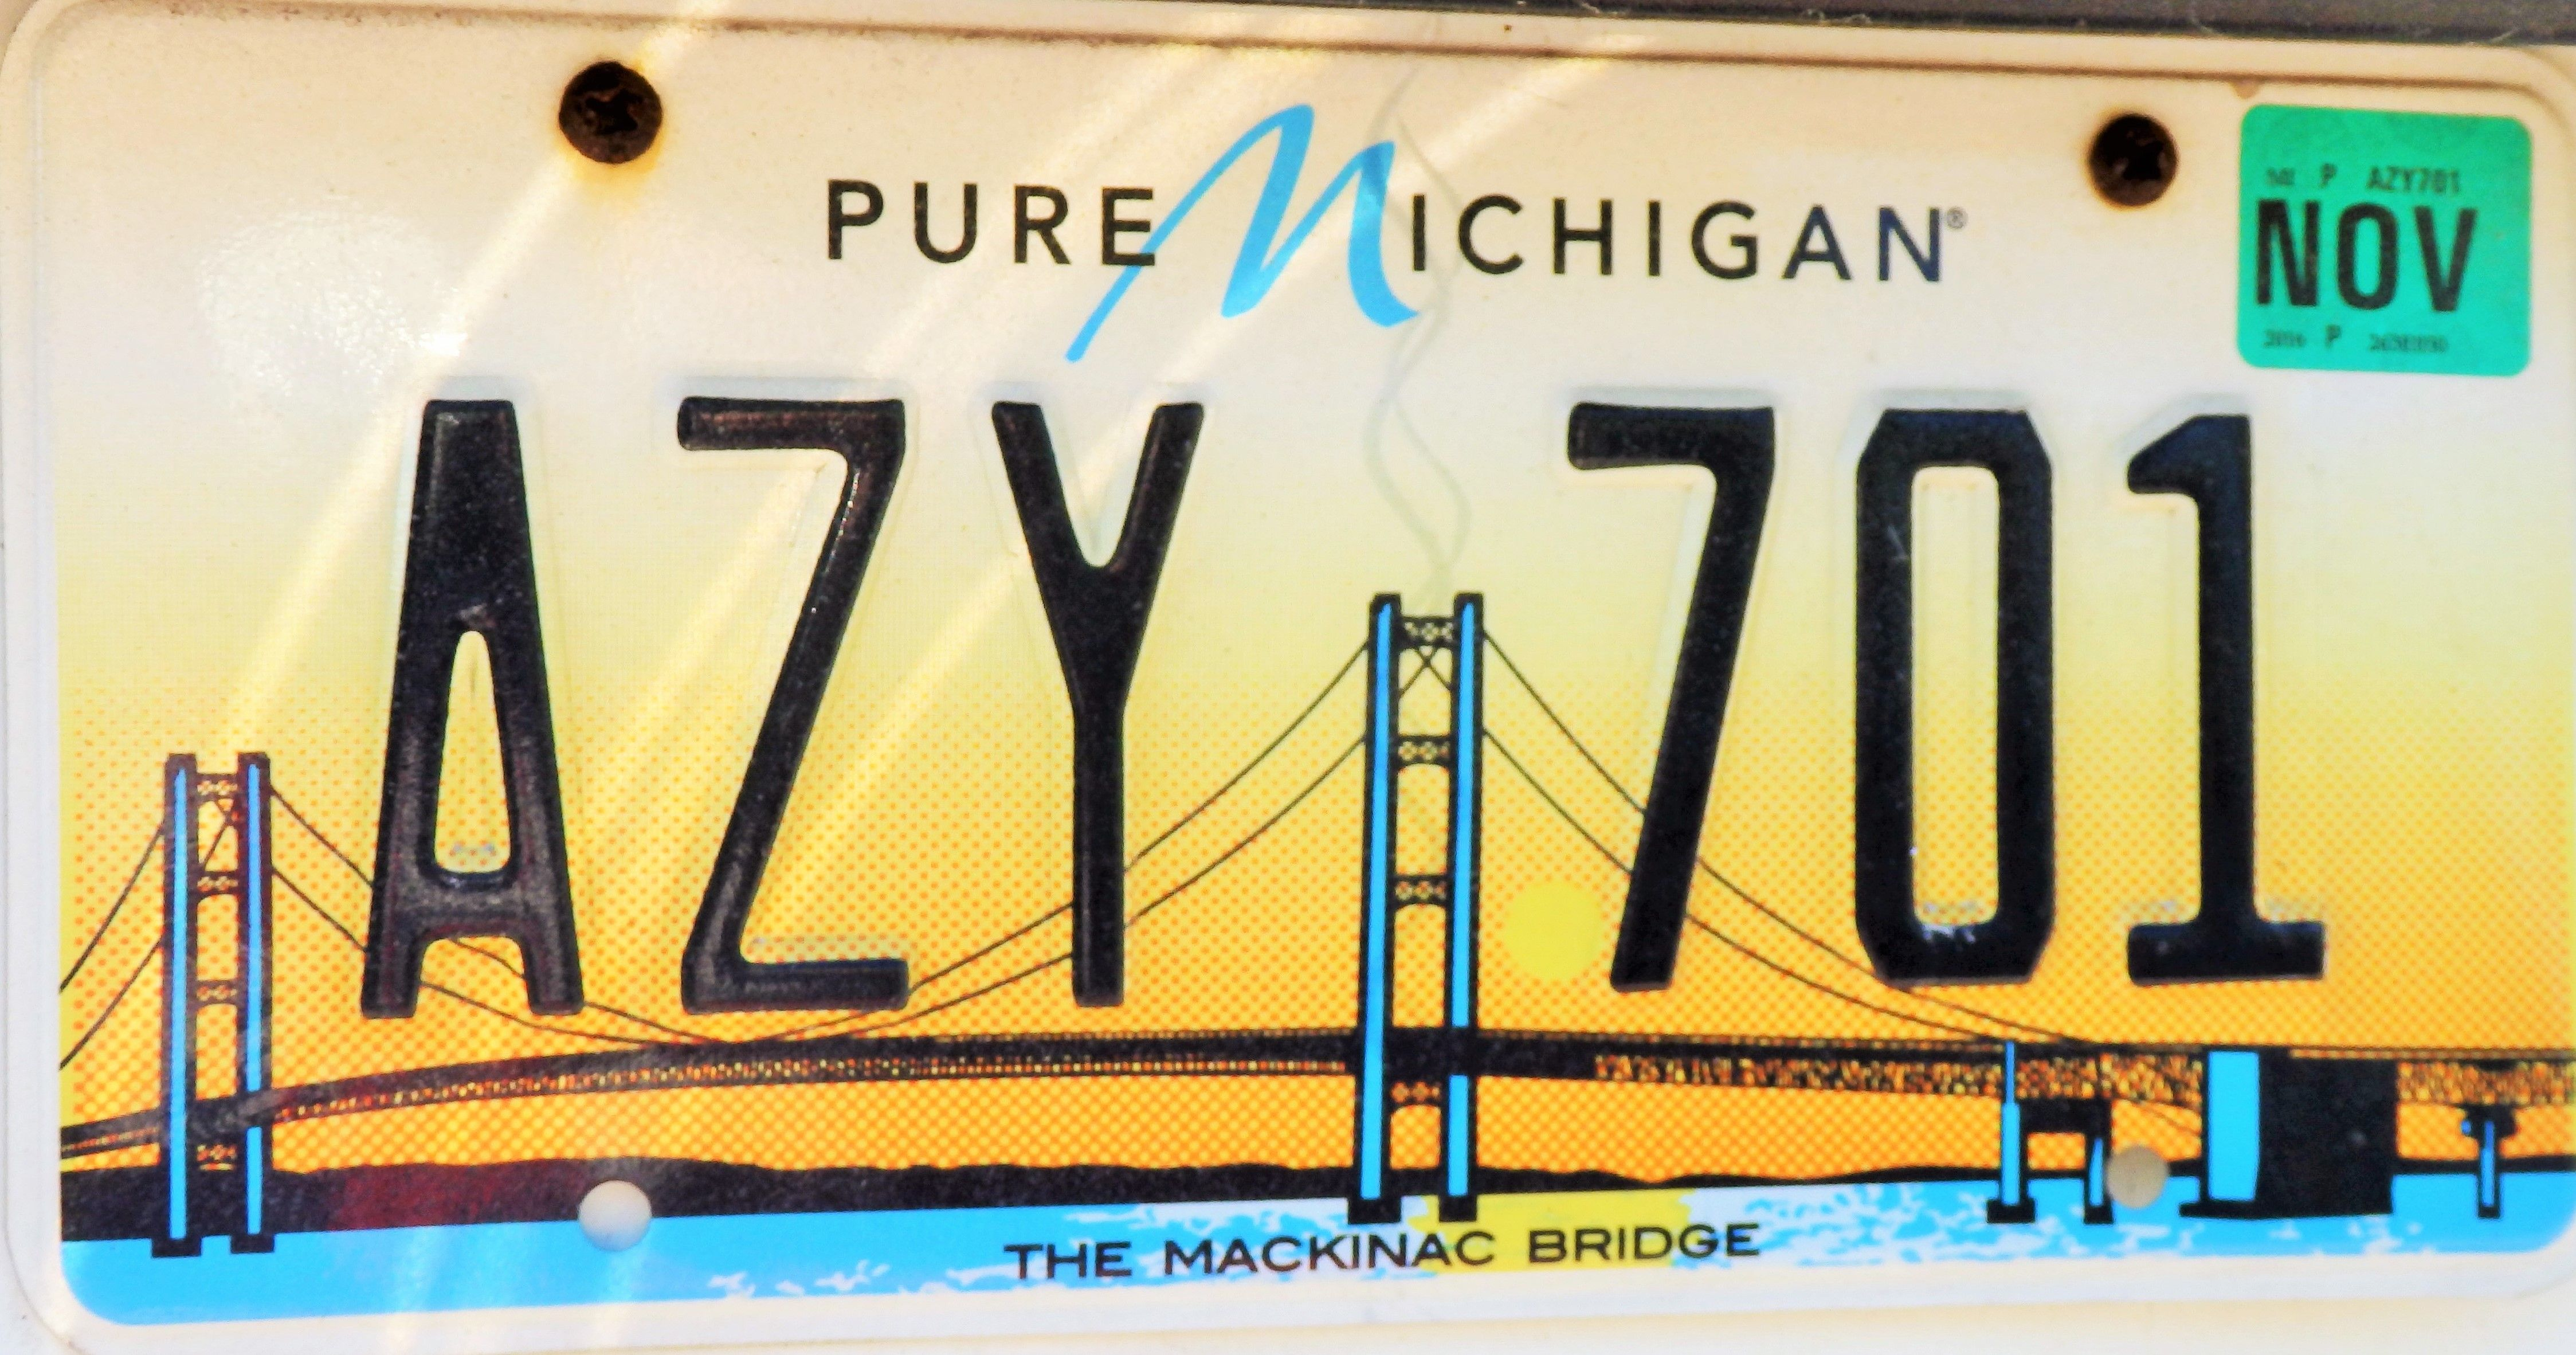 What do i need to register my car in michigan